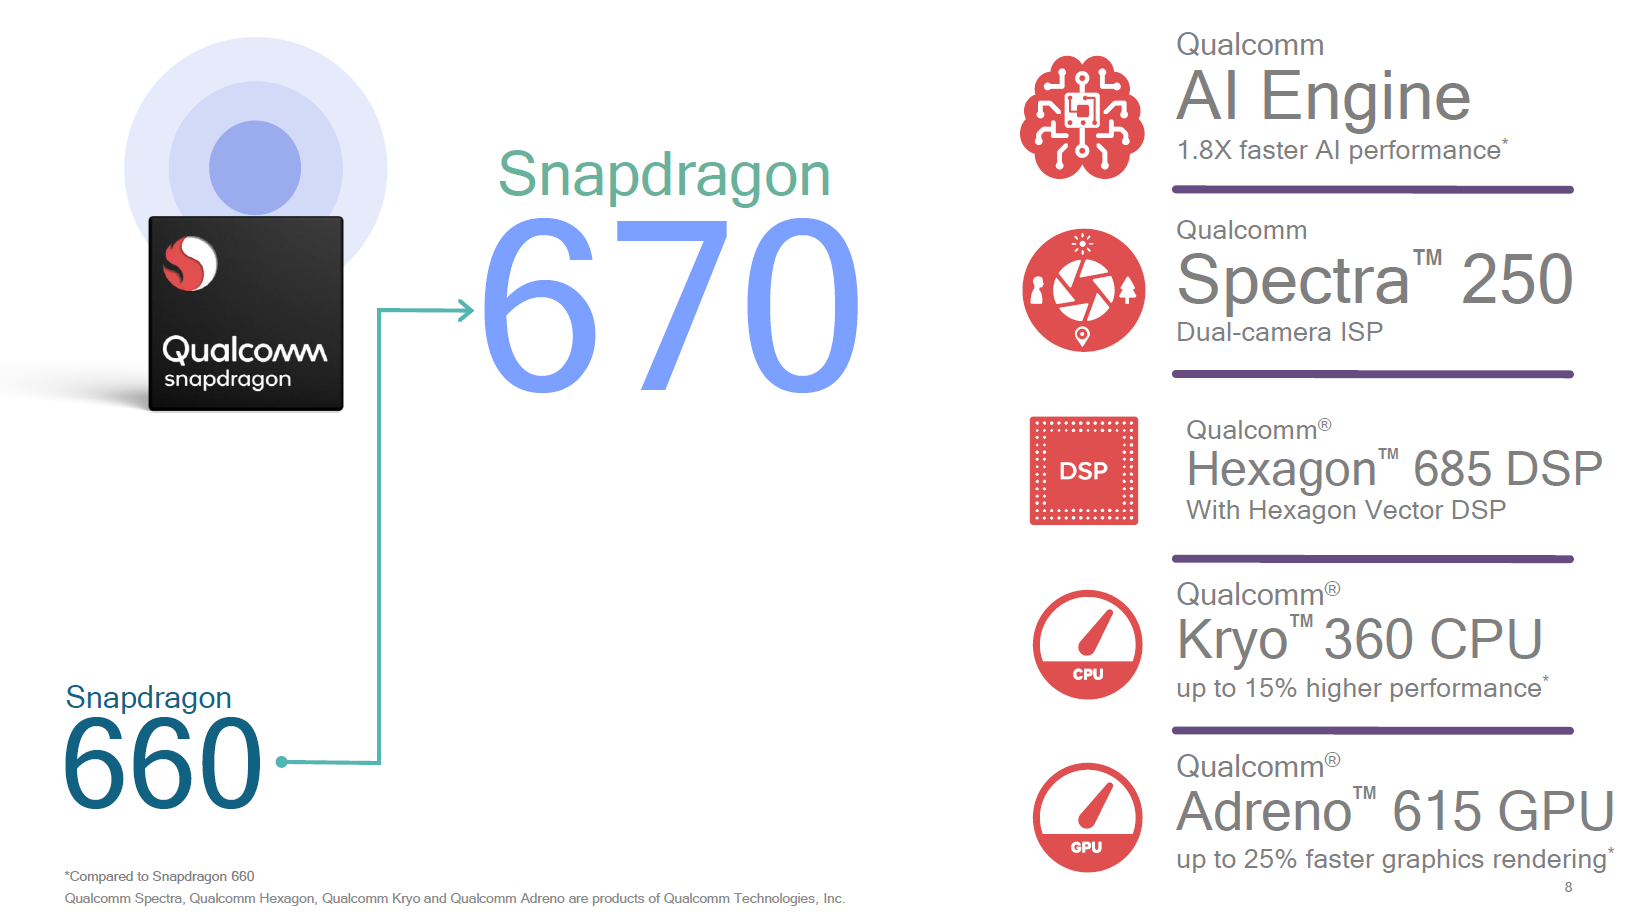 Qualcomm's new Snapdragon 670 could offer the best smartphone value out there